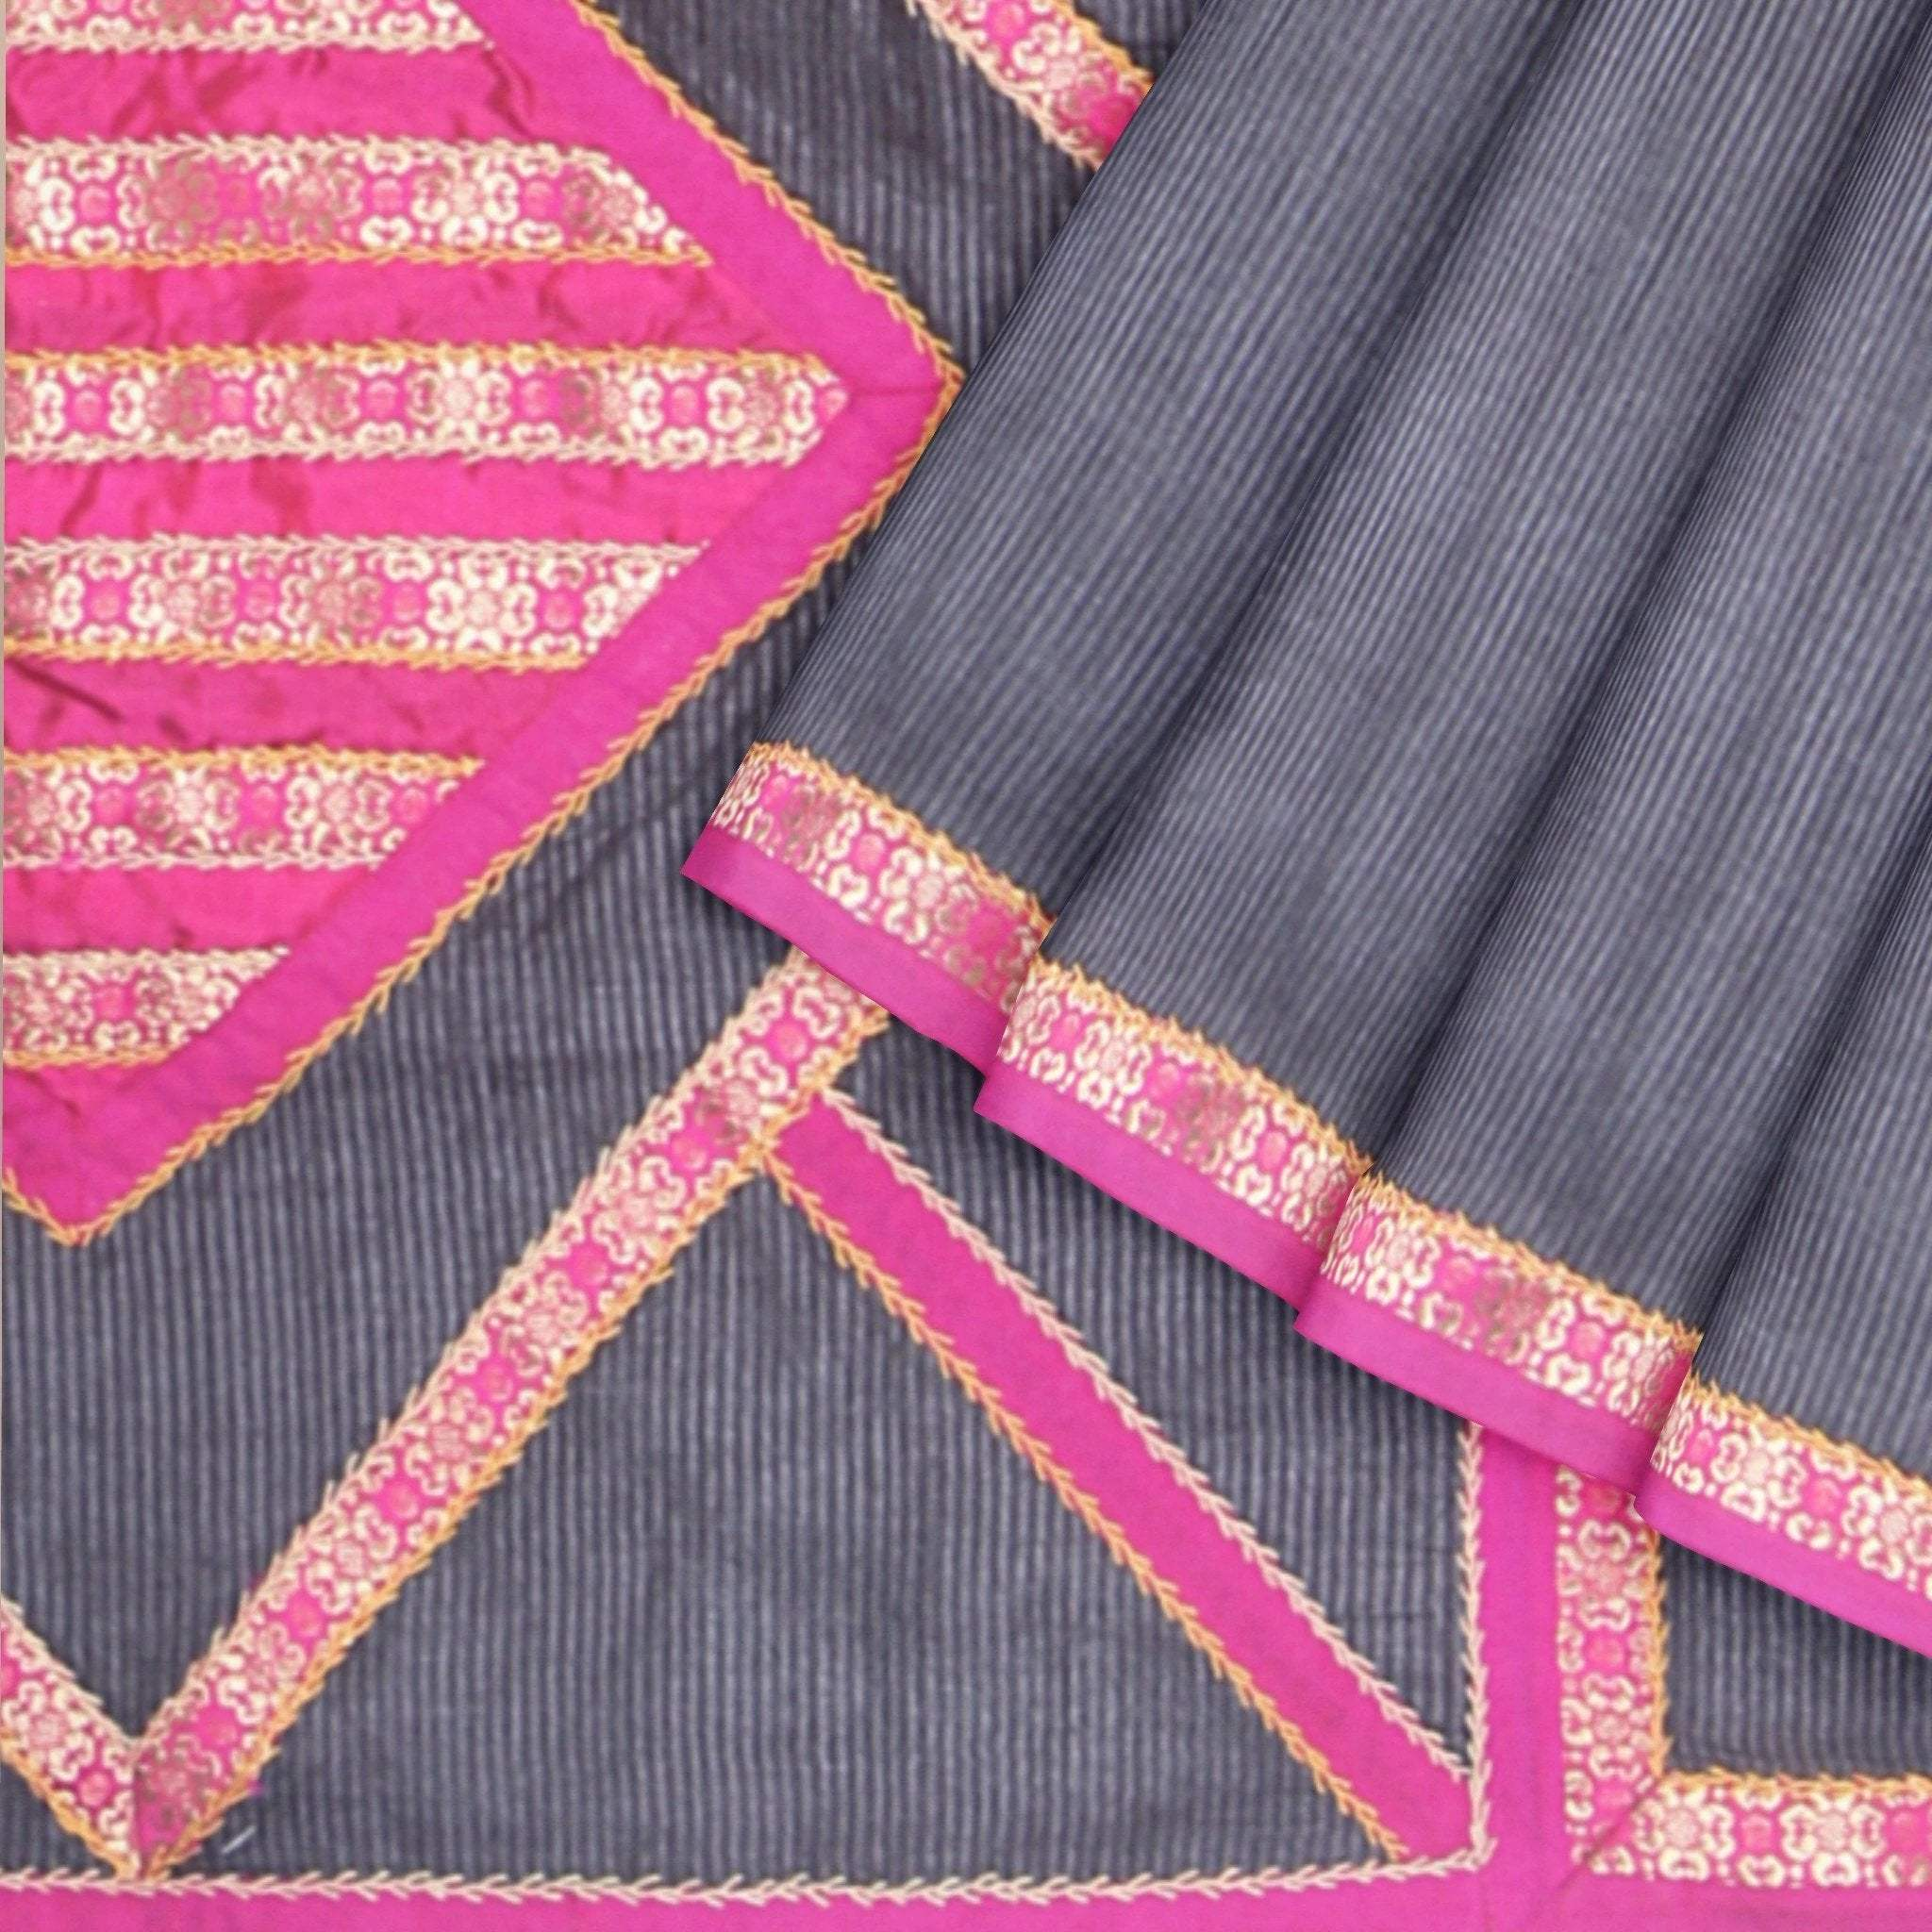 Jet-Black-Self-lined-Tussar-Silk-Saree-with-Brocade-Patchwork